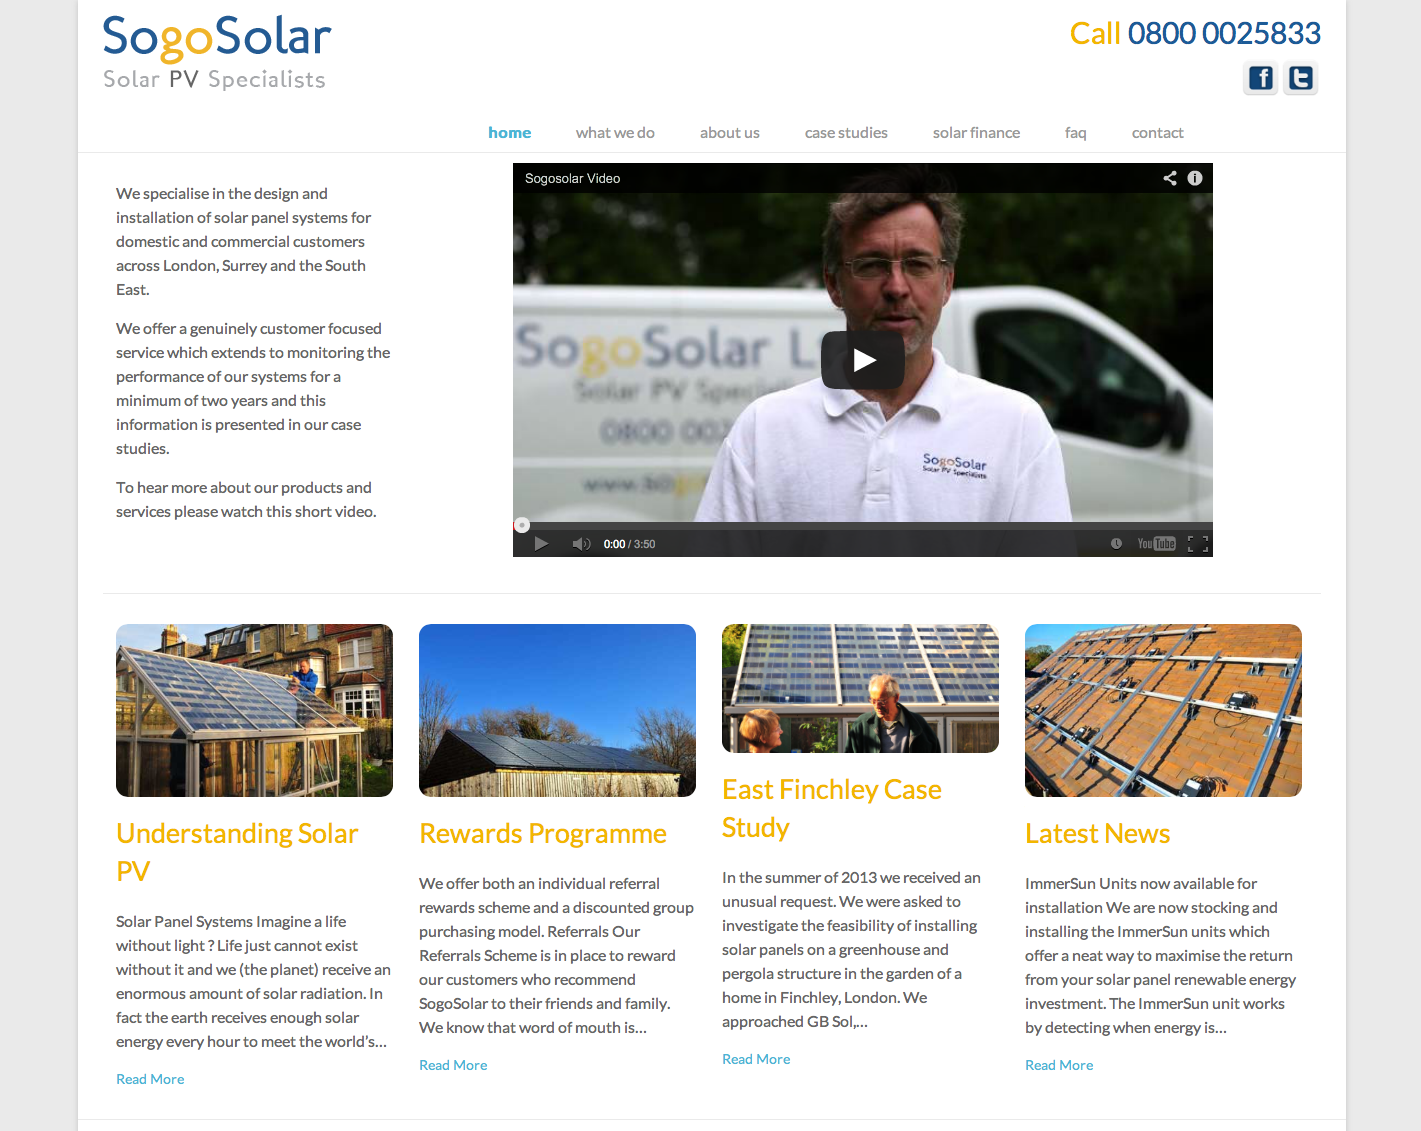 SogoSolar, Twickenham website design & development